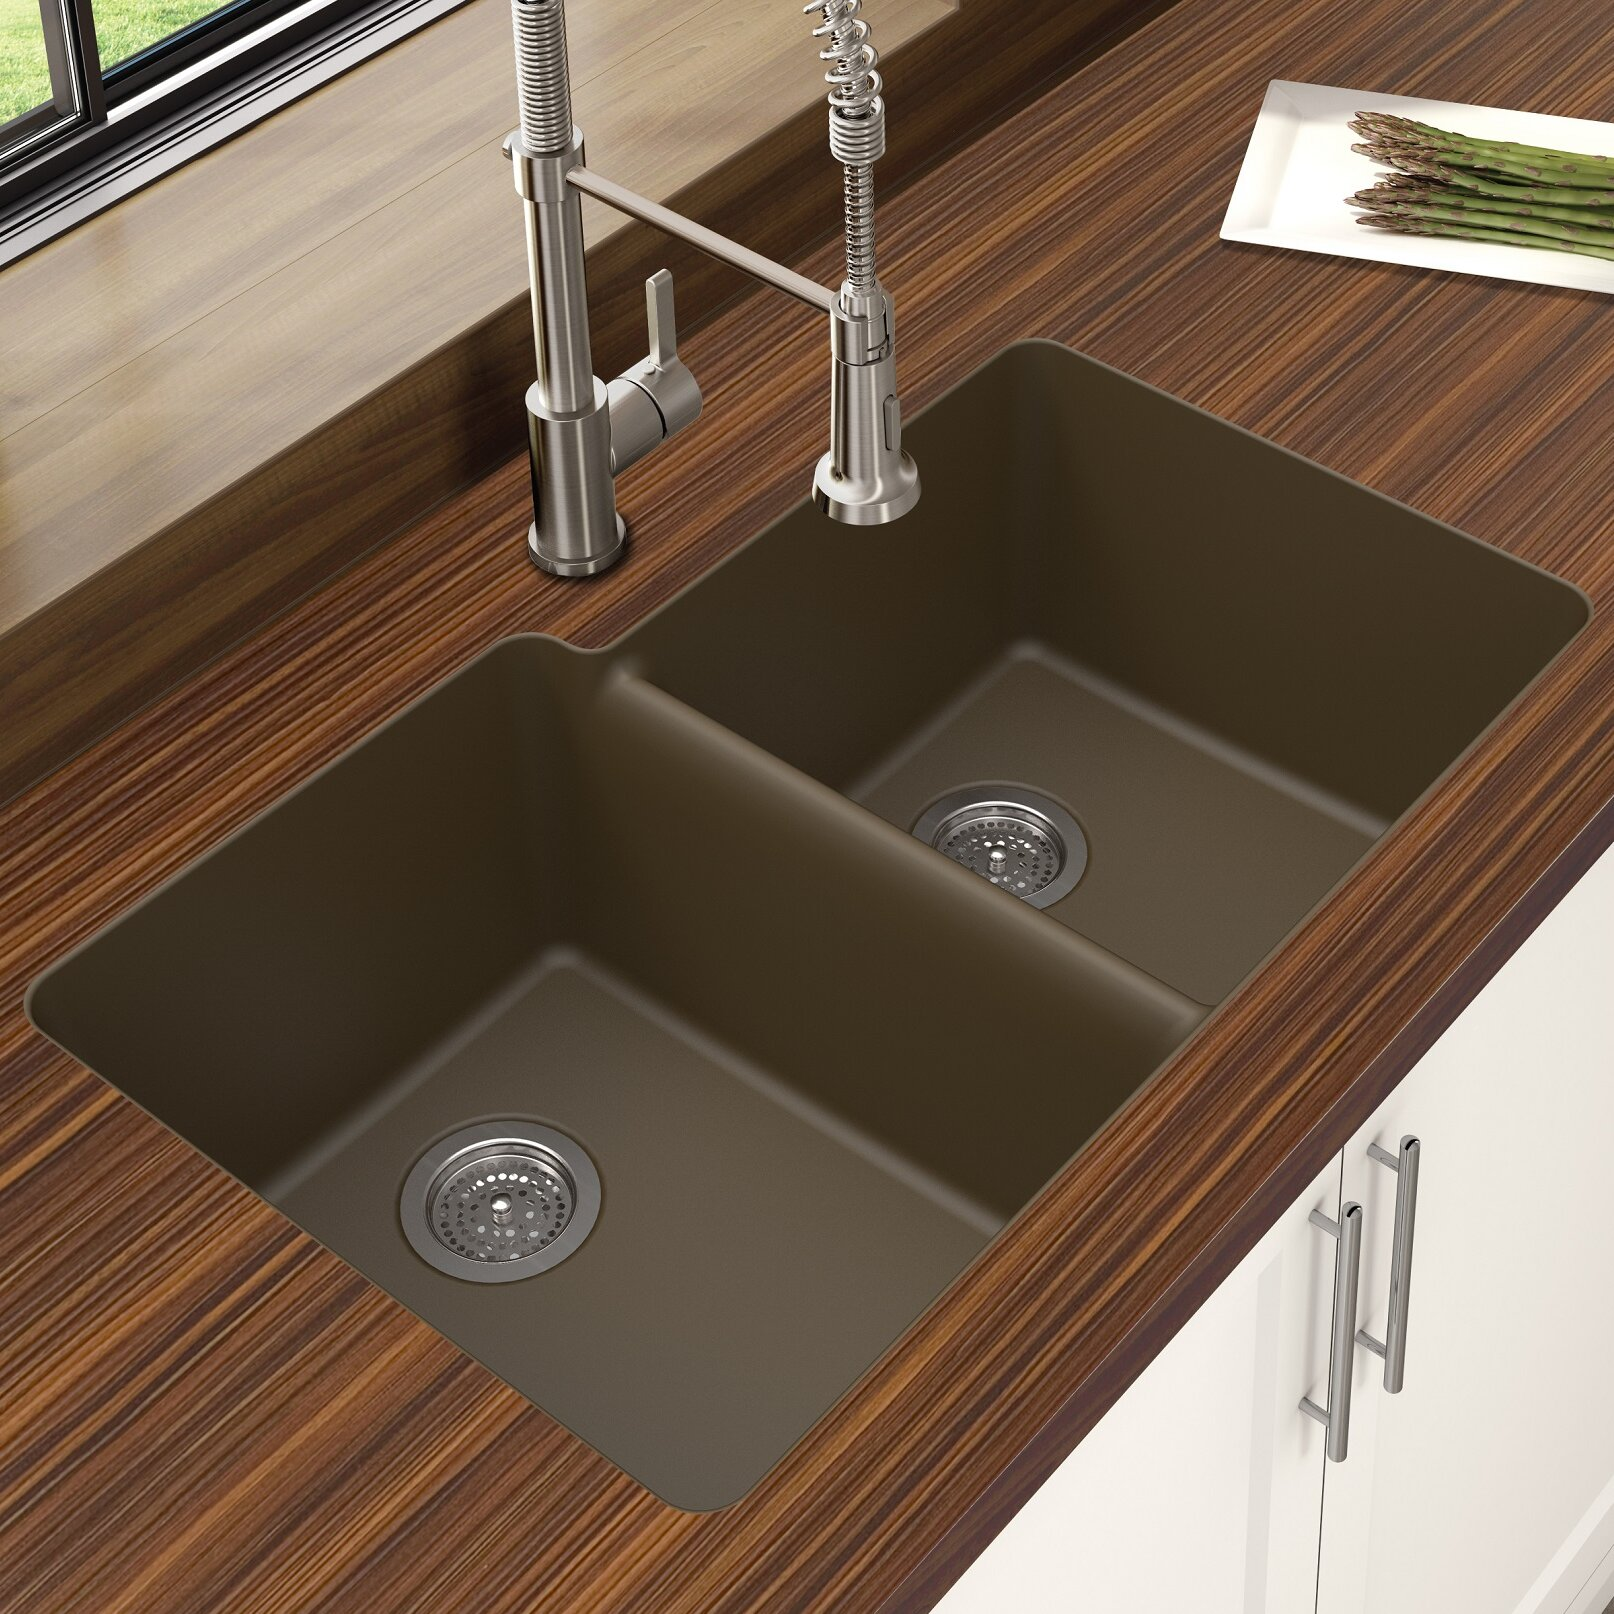 Granite Undermount Kitchen Sinks Winpro Granite Quartz Offset 33 X 22 Double Bowl Undermount